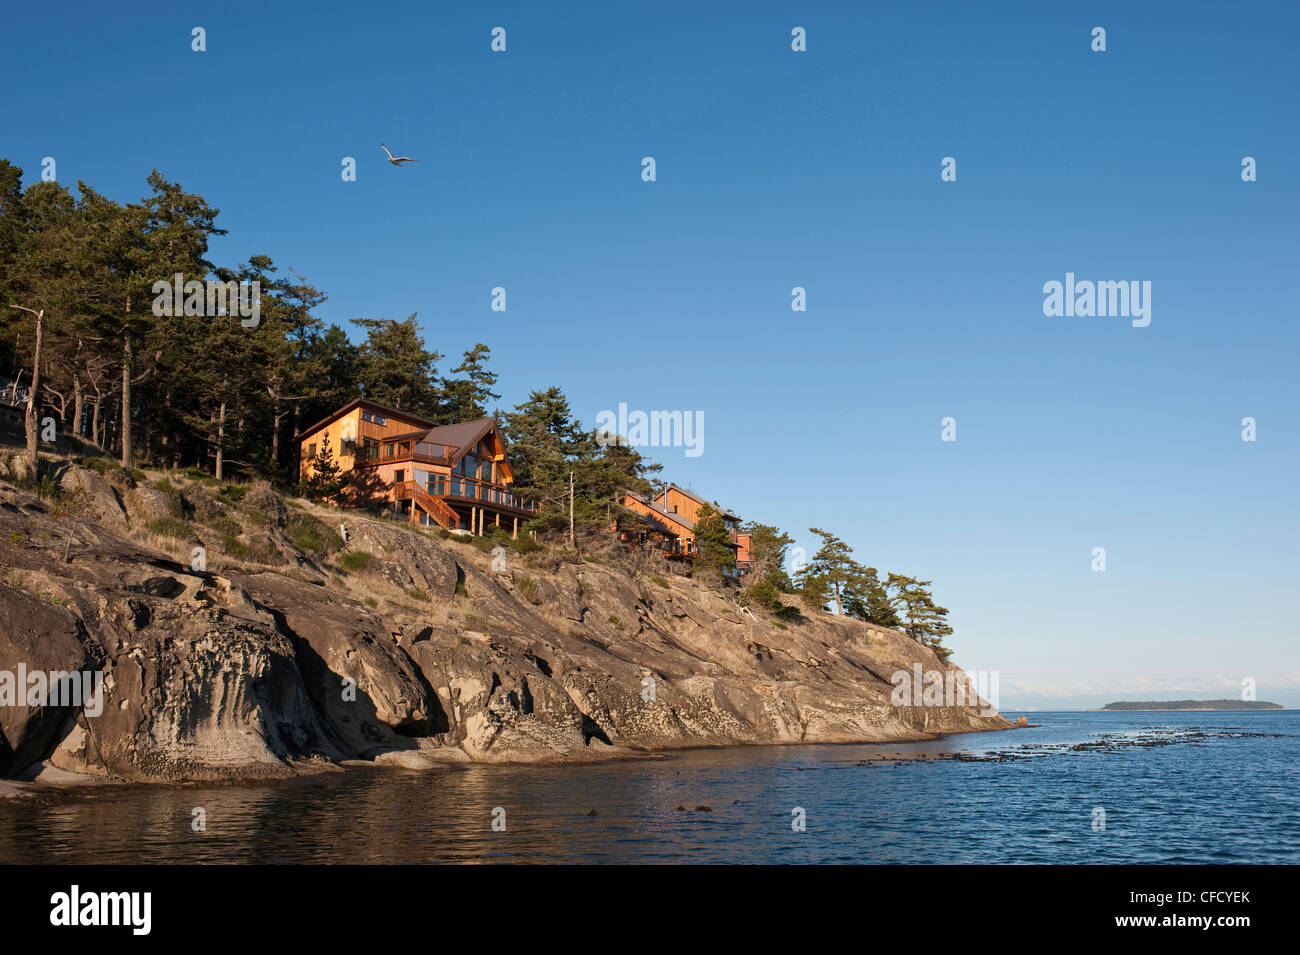 Waterfront homes on Saturna Island, British Columbia, Canada - Stock Image